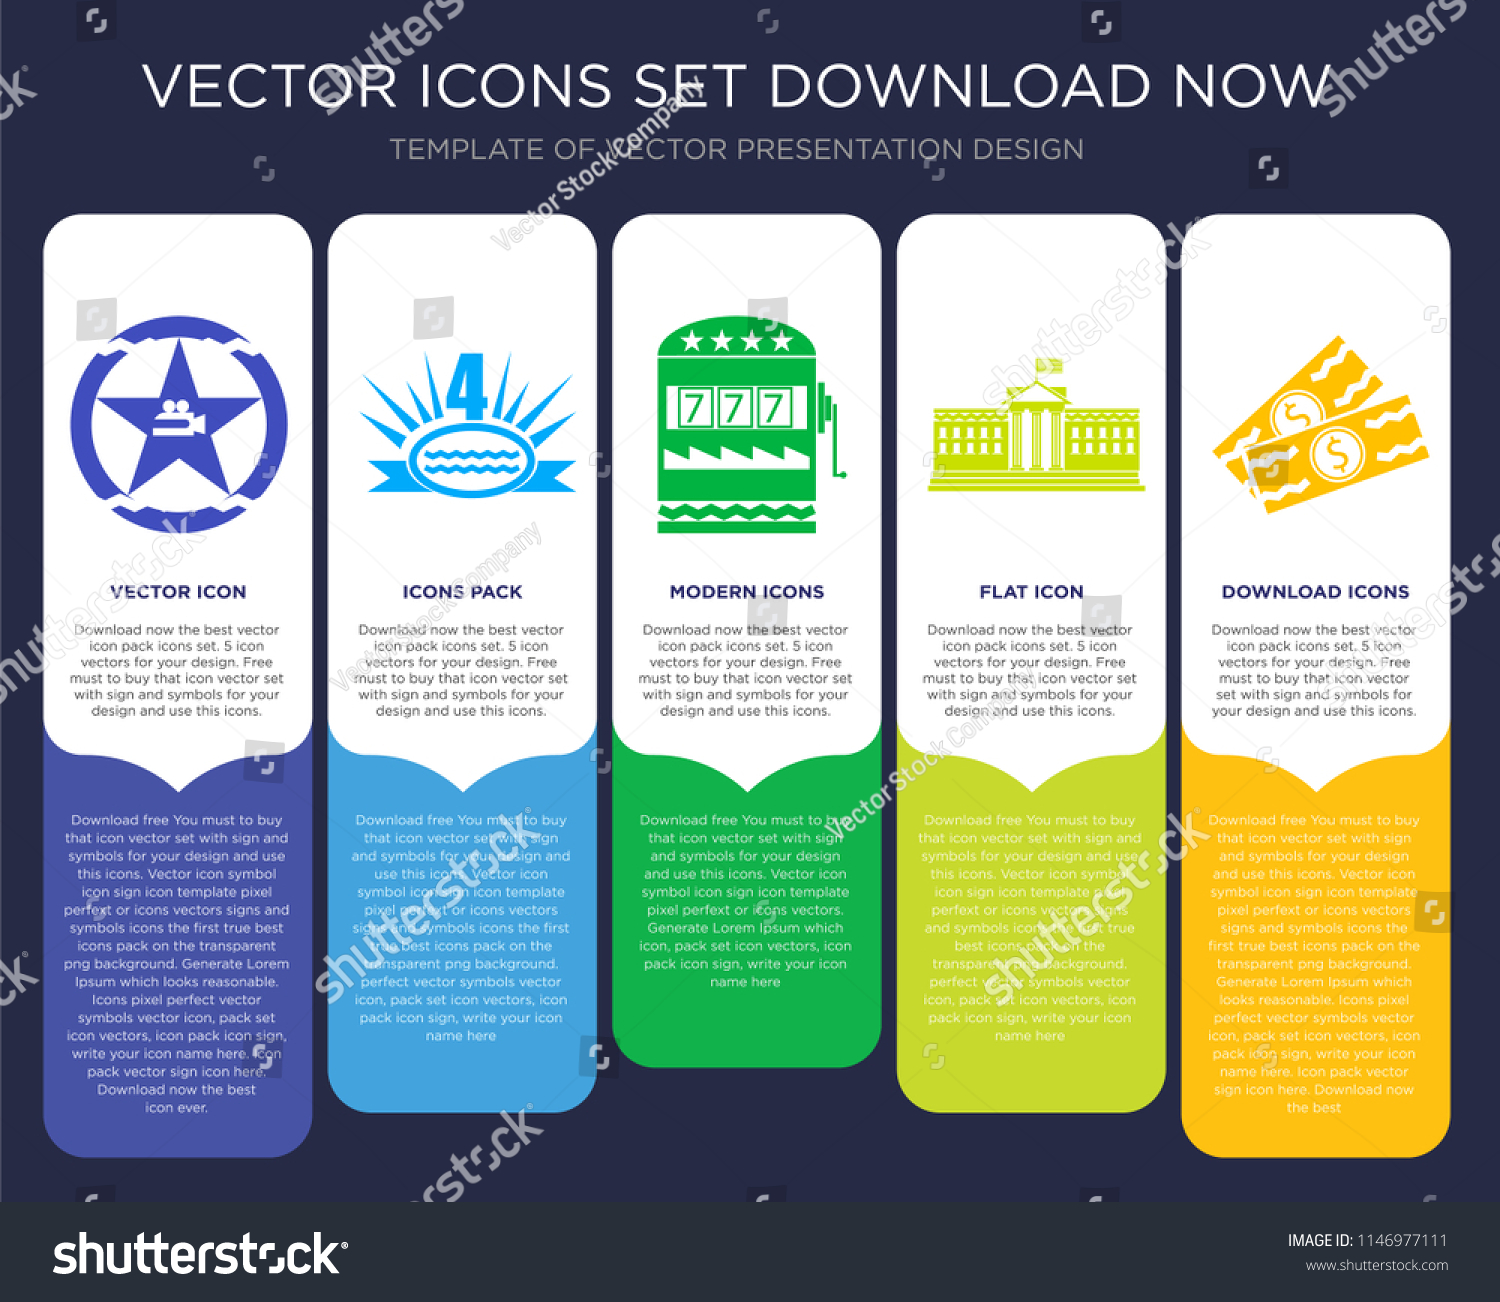 5 Vector Icons Such Walk Fame Stock Vector 1146977111 Shutterstock